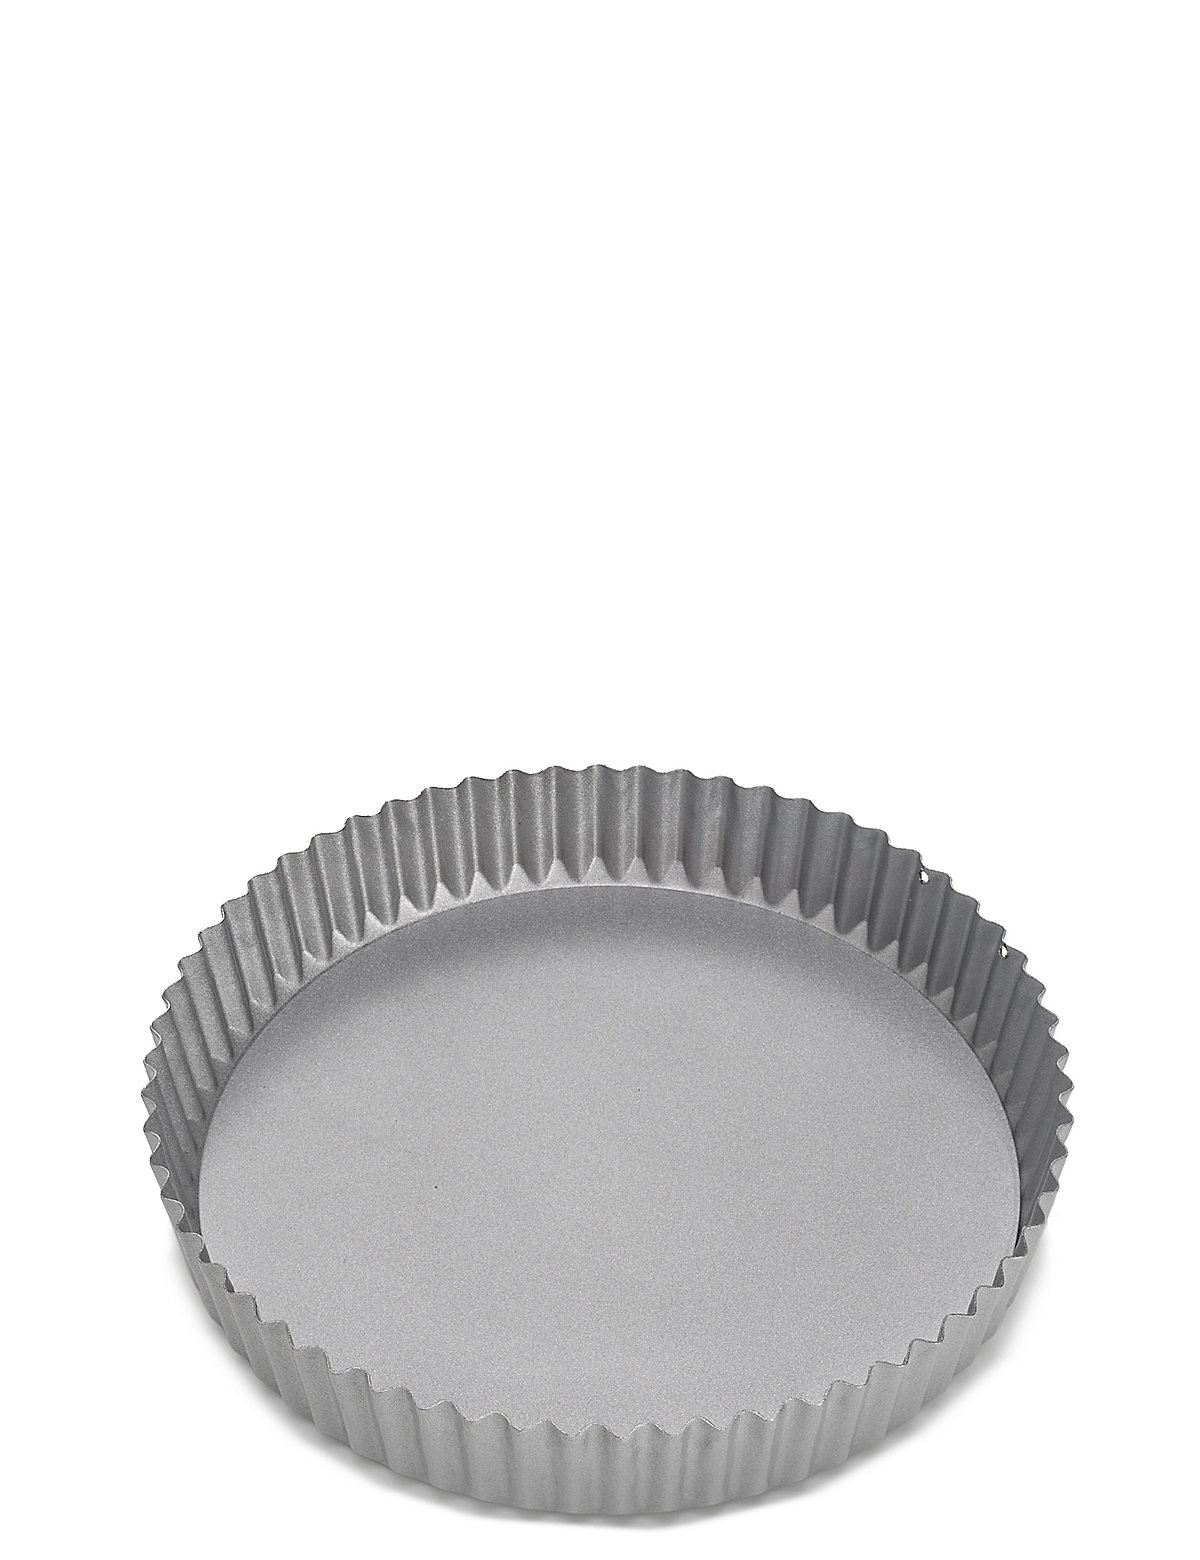 Image of 20cm Non-Stick Loose Base Flan Tin